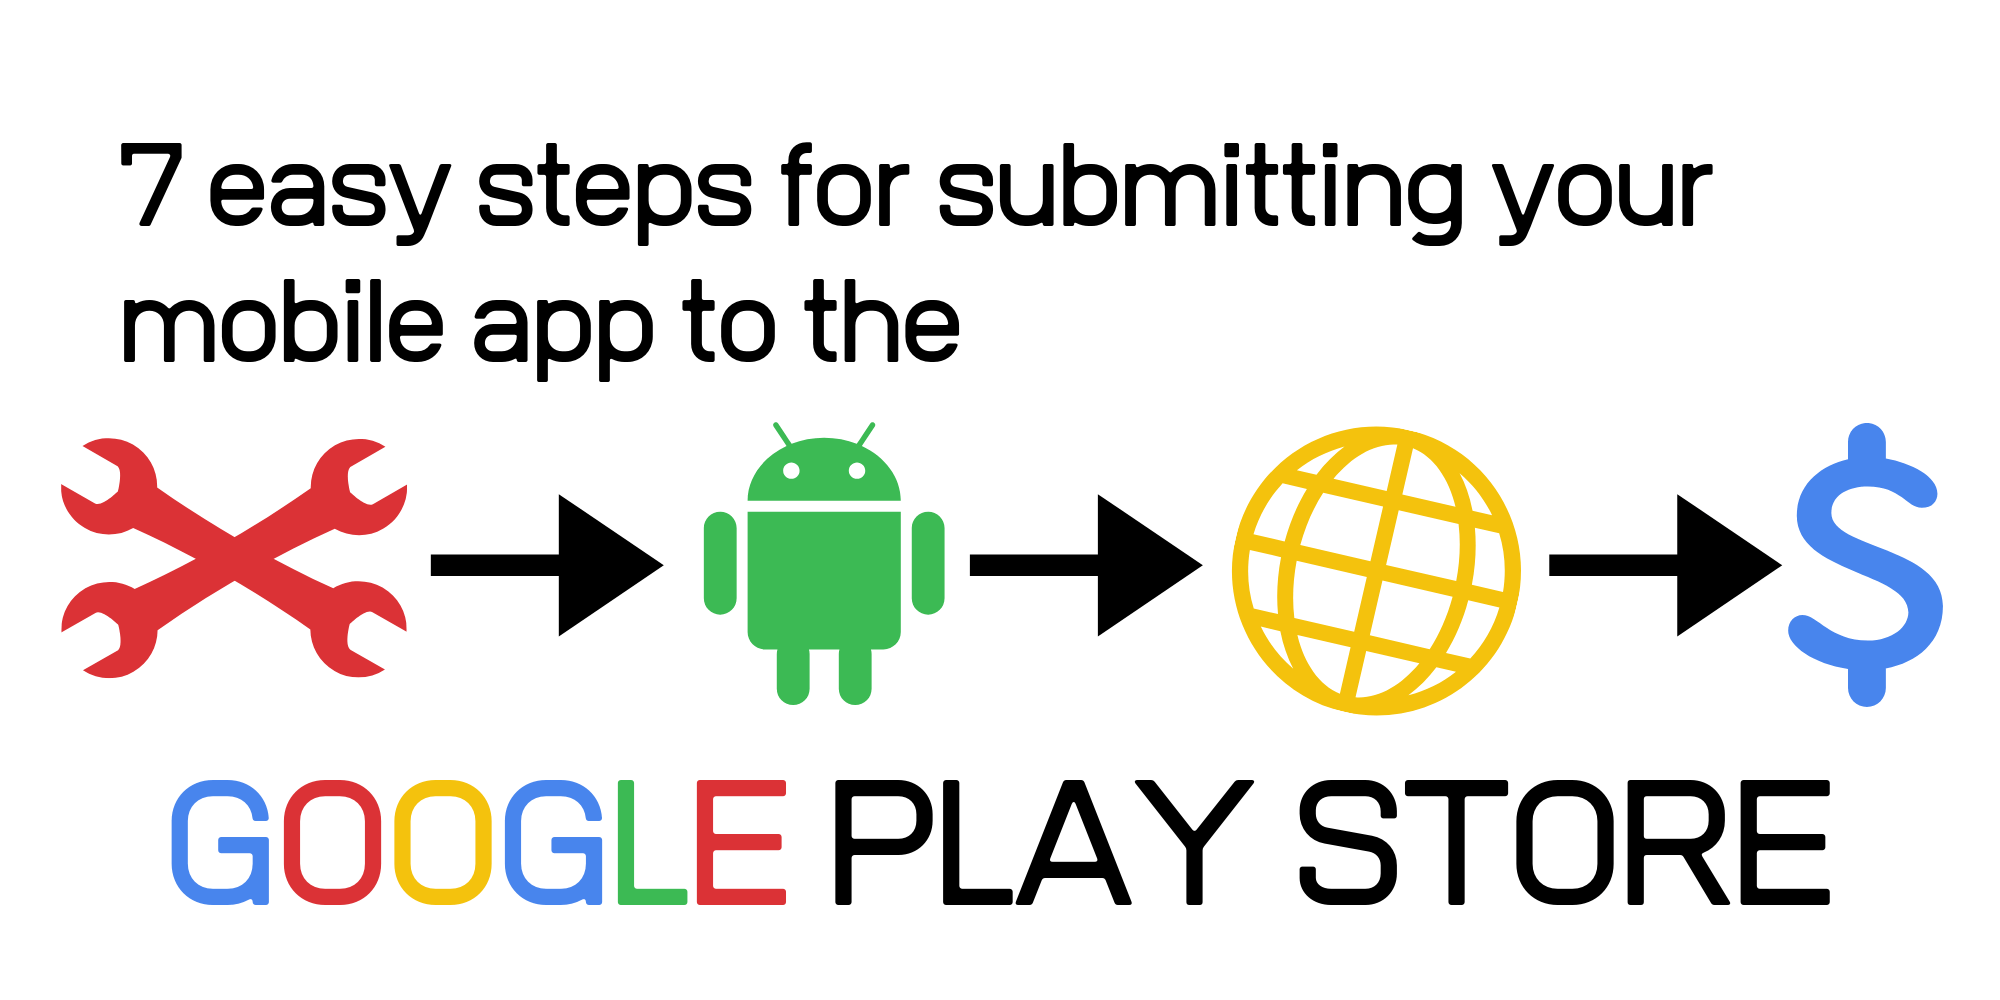 Cover photo for How to submit your mobile app to the Google Play Store